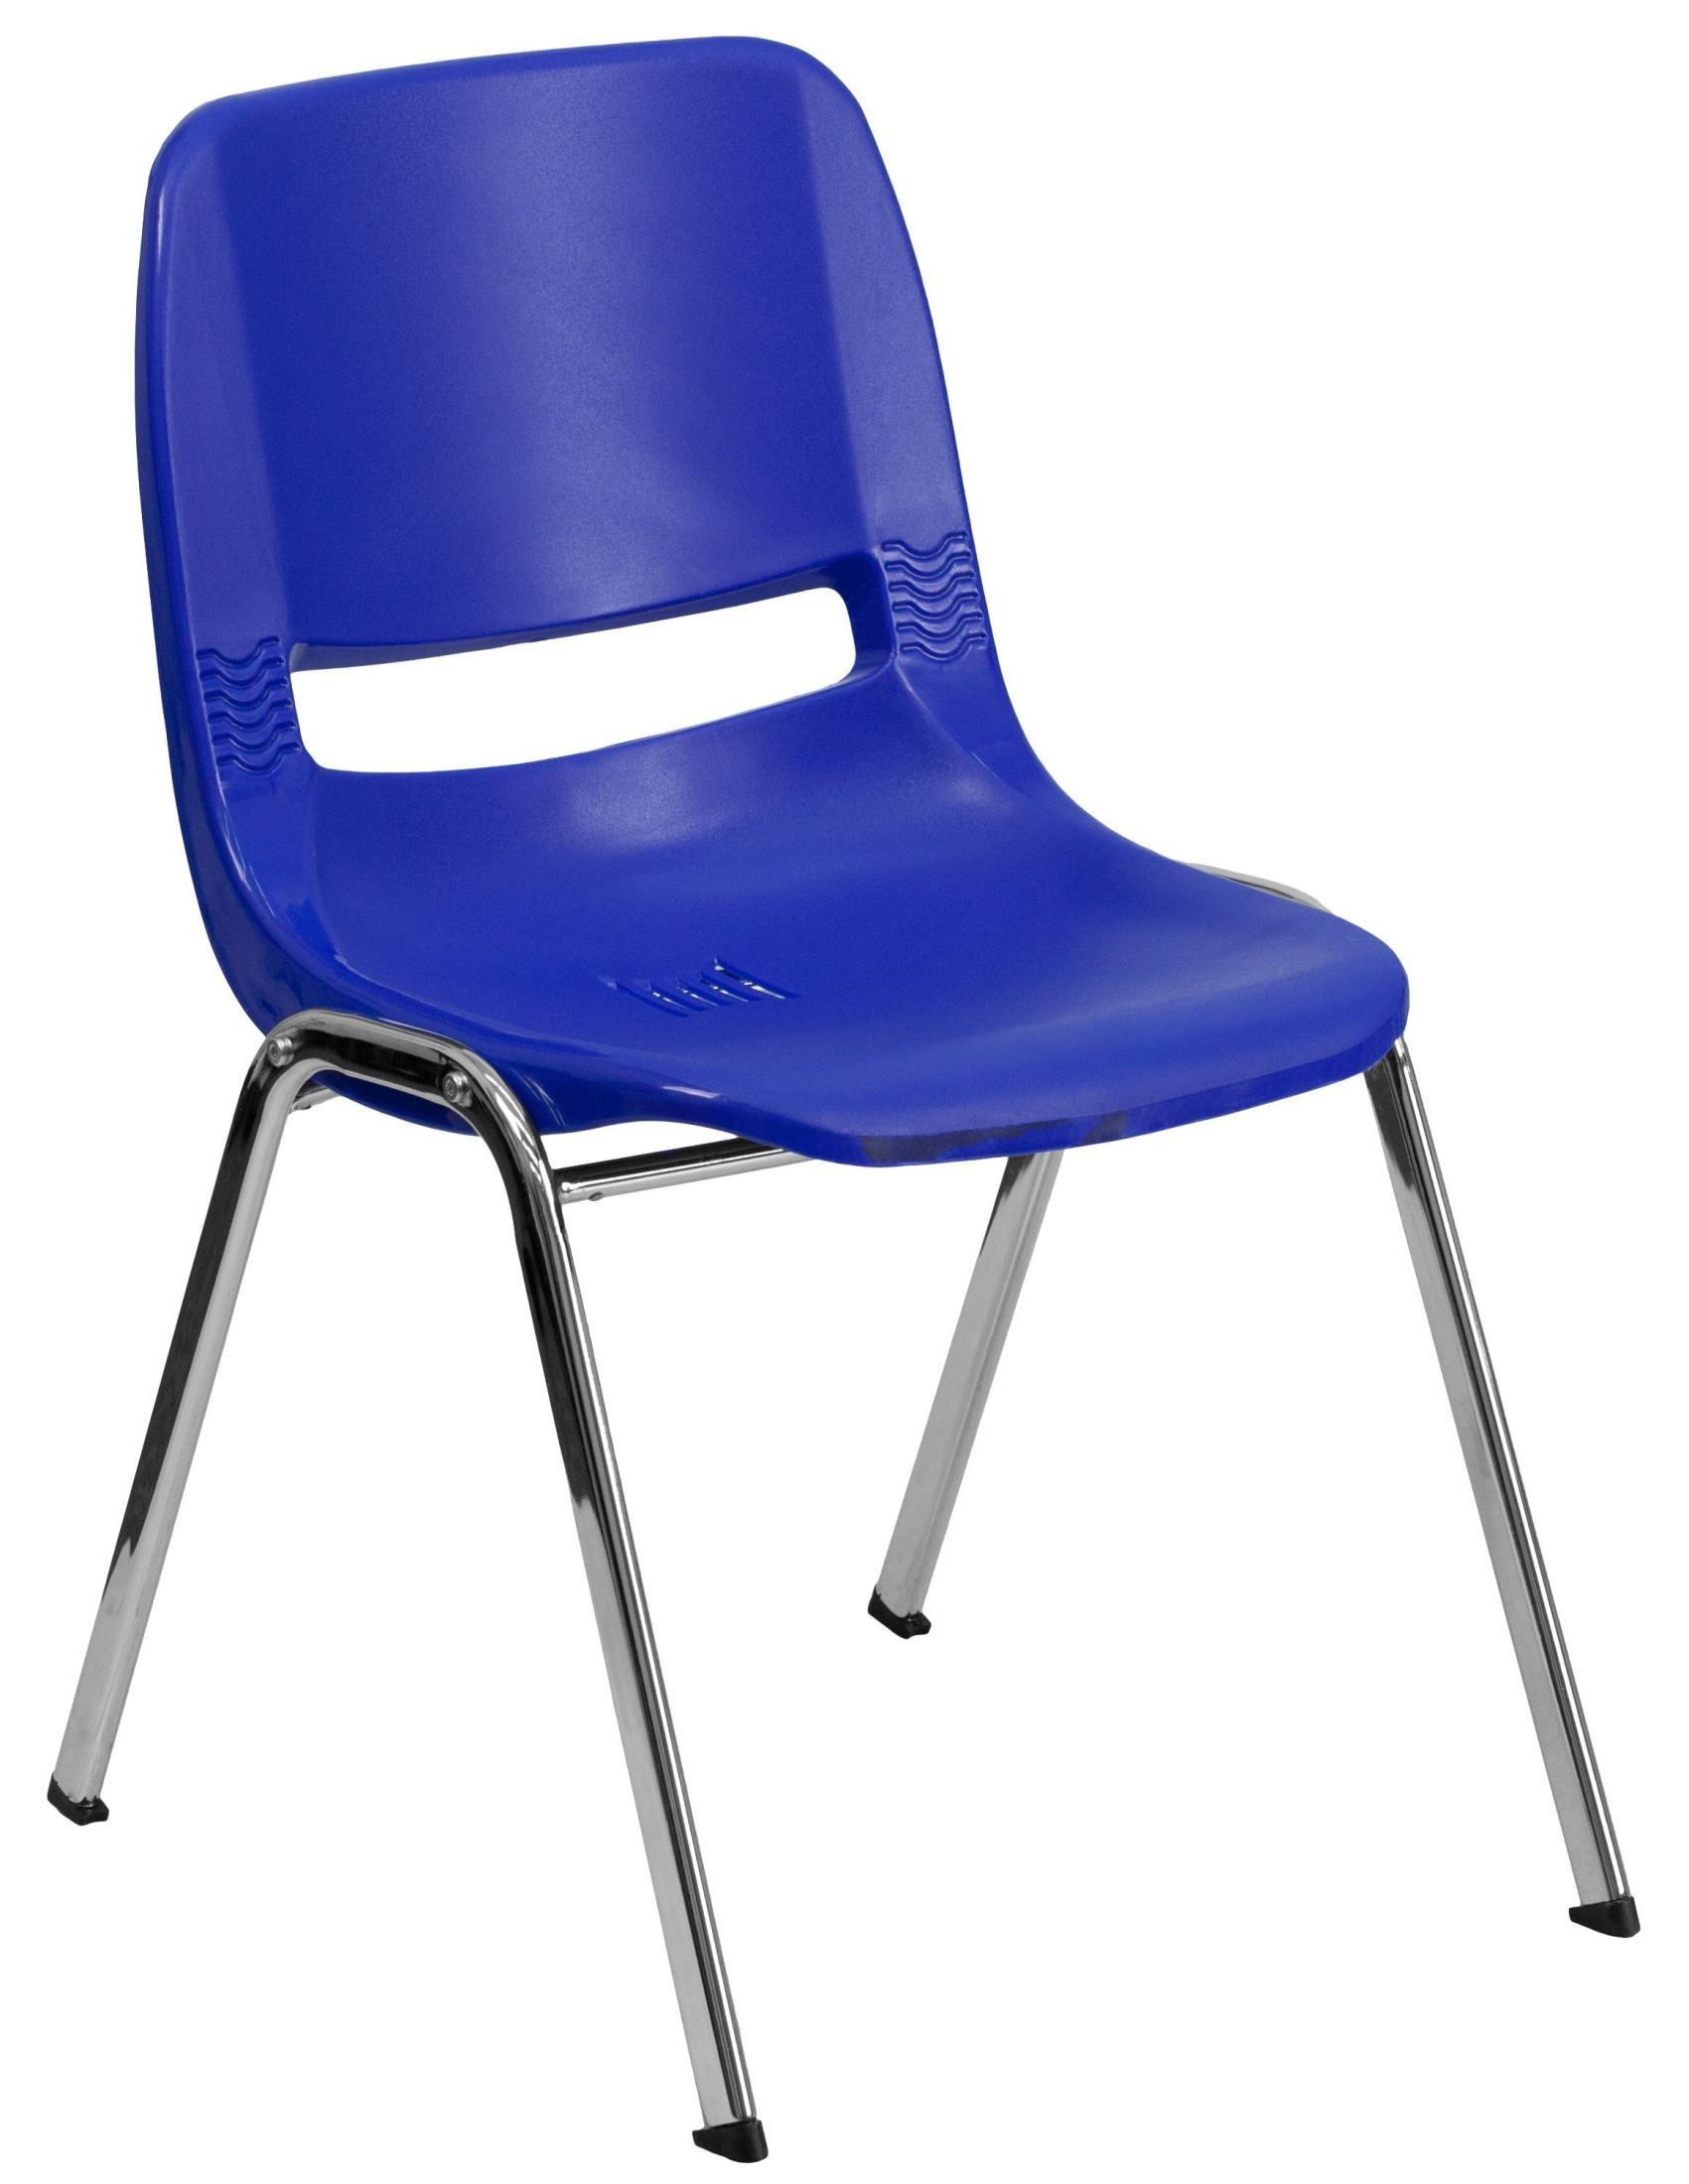 Hercules Stacking Chairs Hercules Series Navy 29 Quot Ergonomic Shell Stack Chair With